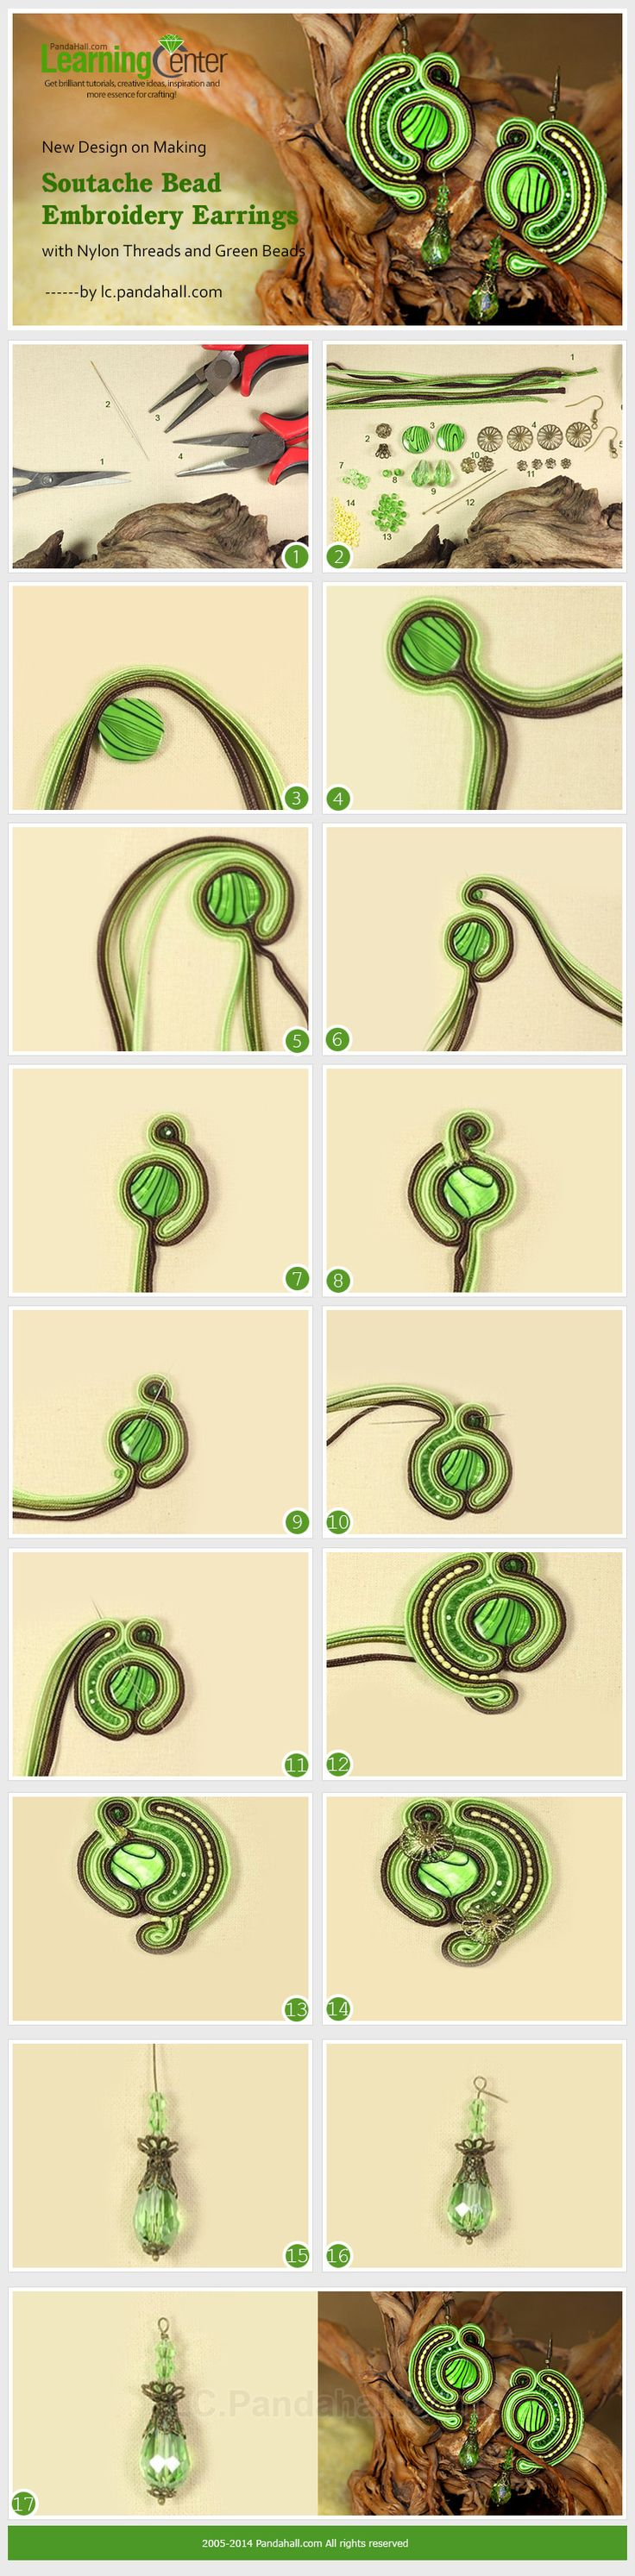 New Design on Making Soutache Bead Embroidery Earrings with Nylon Threads and Green Beads